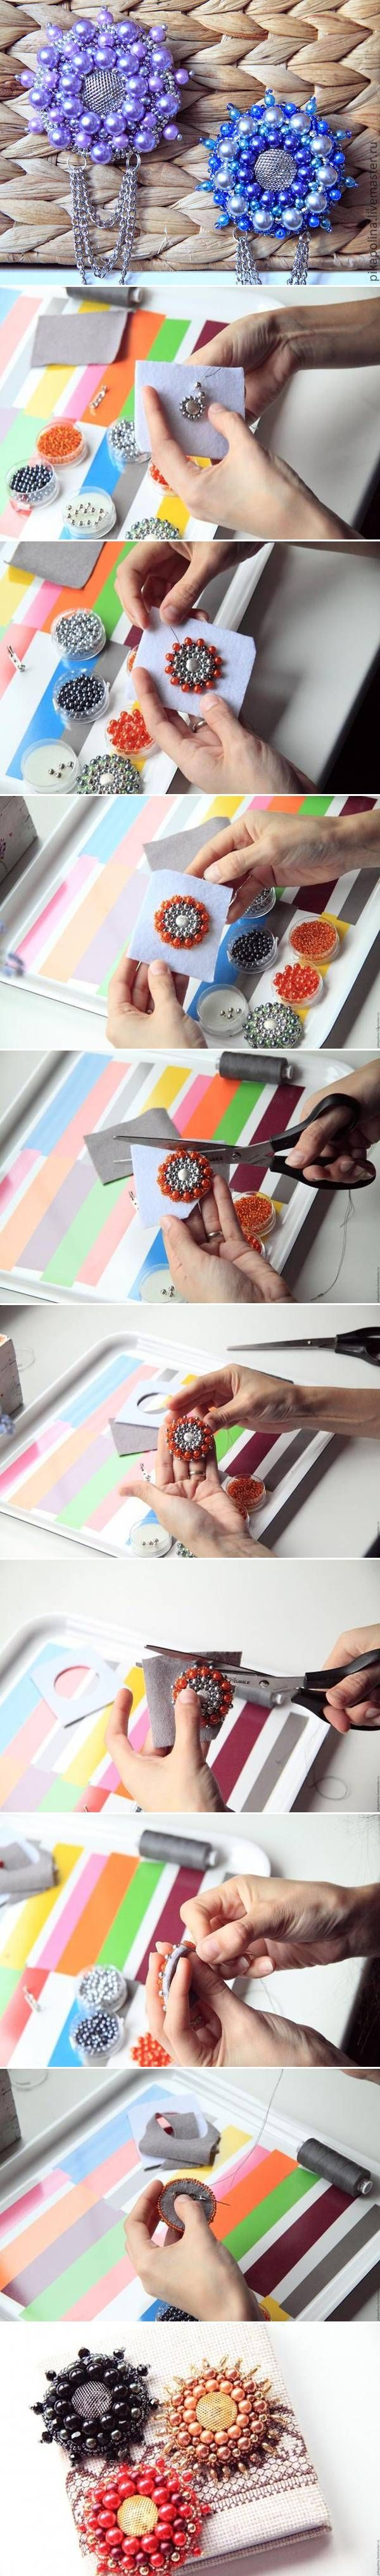 DIY Beads Flower Brooch. These could be flower centers also.